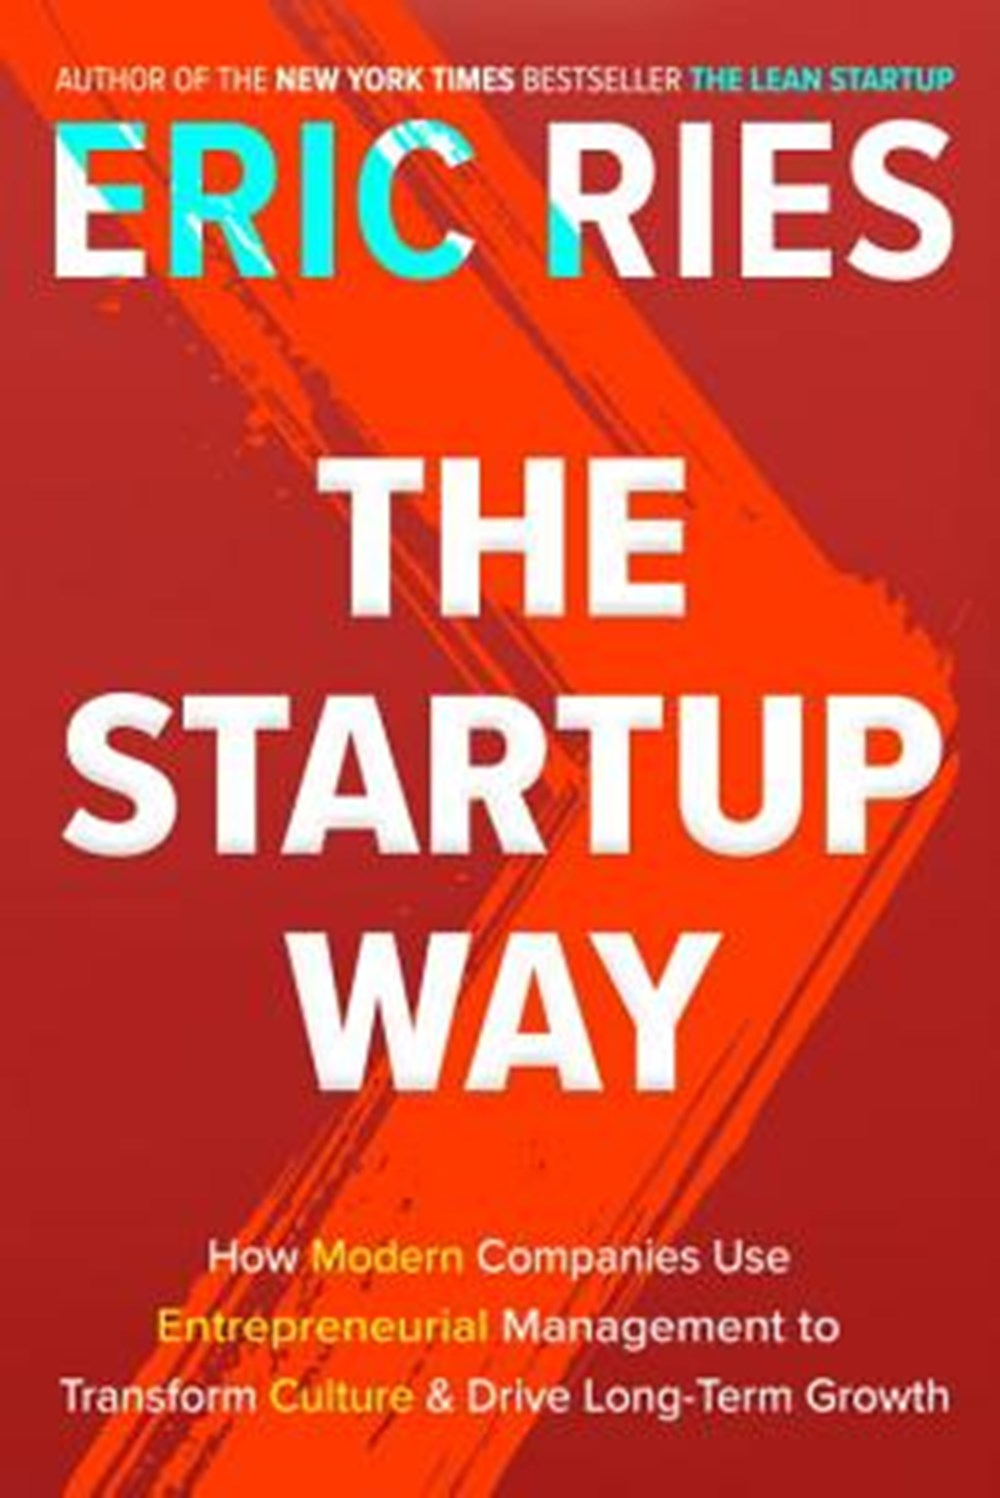 Startup Way How Modern Companies Use Entrepreneurial Management to Transform Culture and Drive Long-